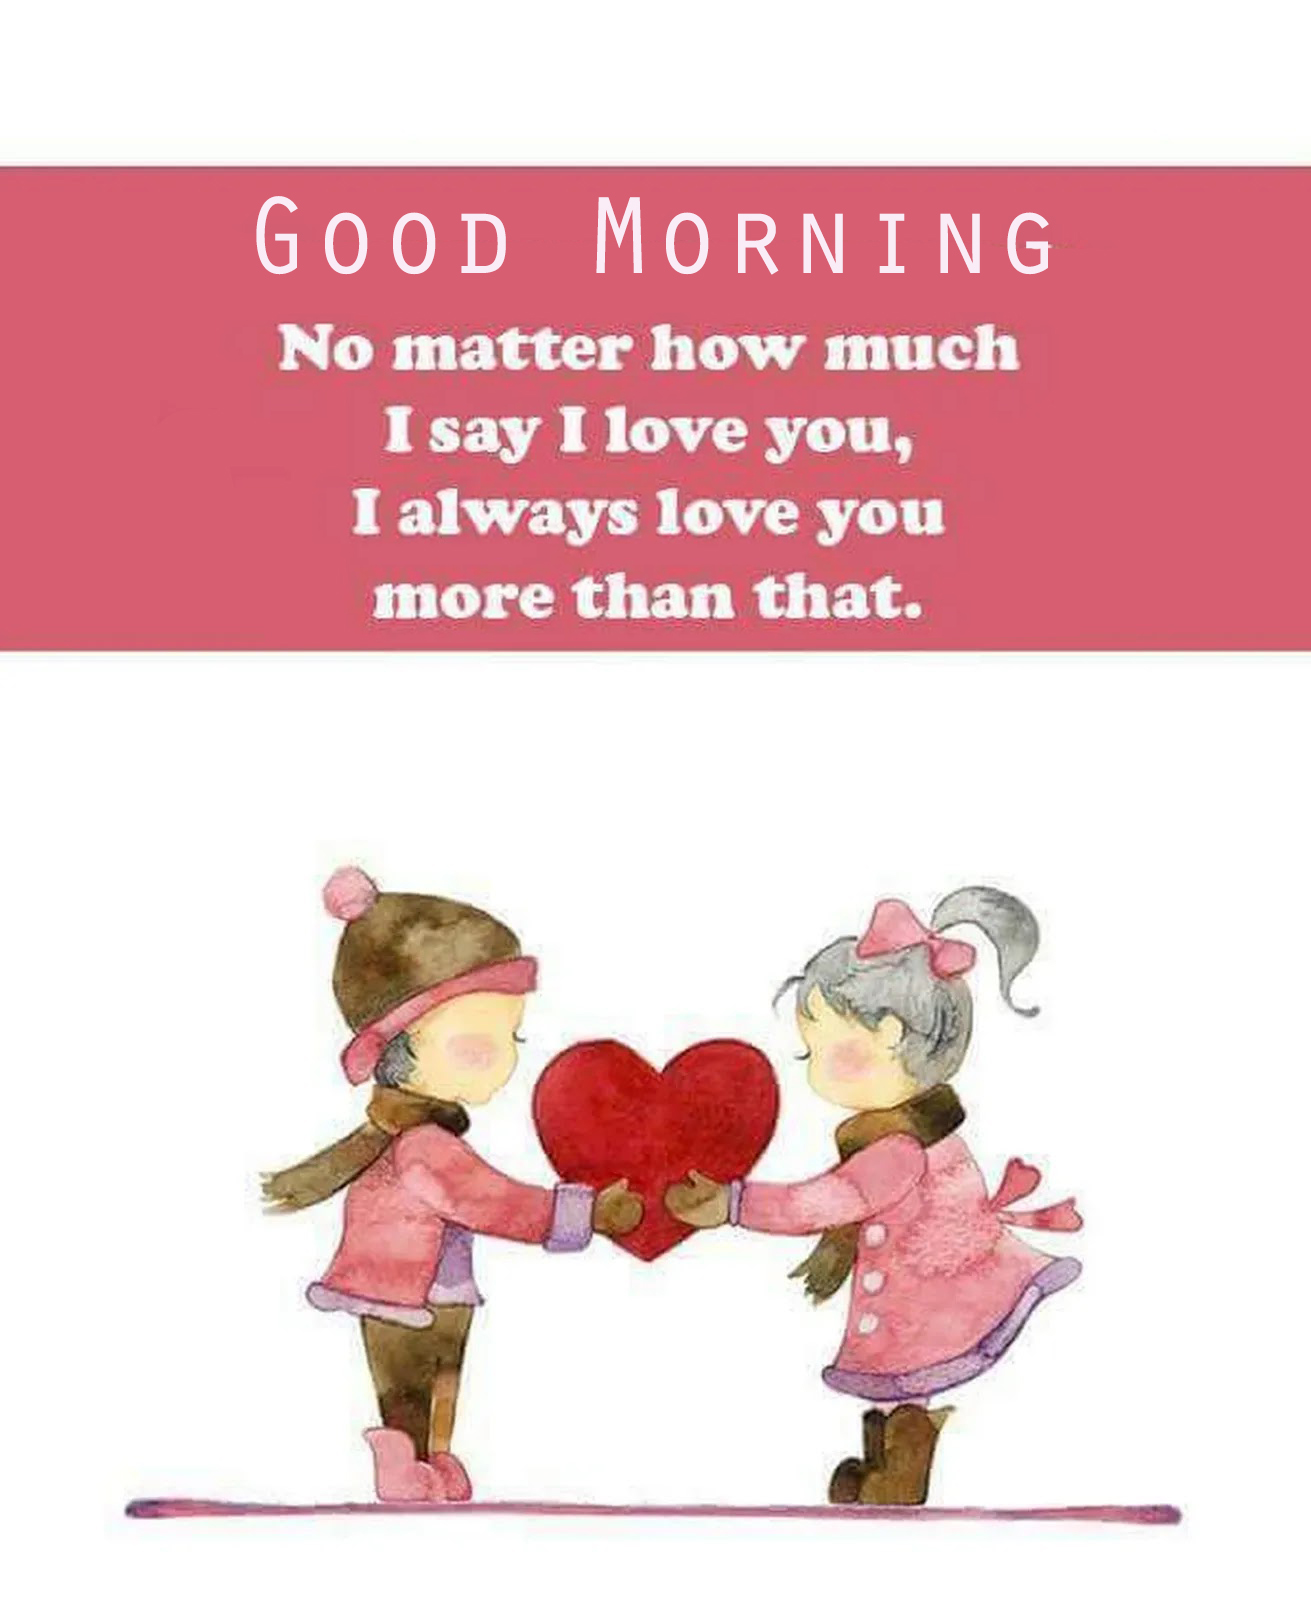 Good Morning I Always Love You - Good Morning Images